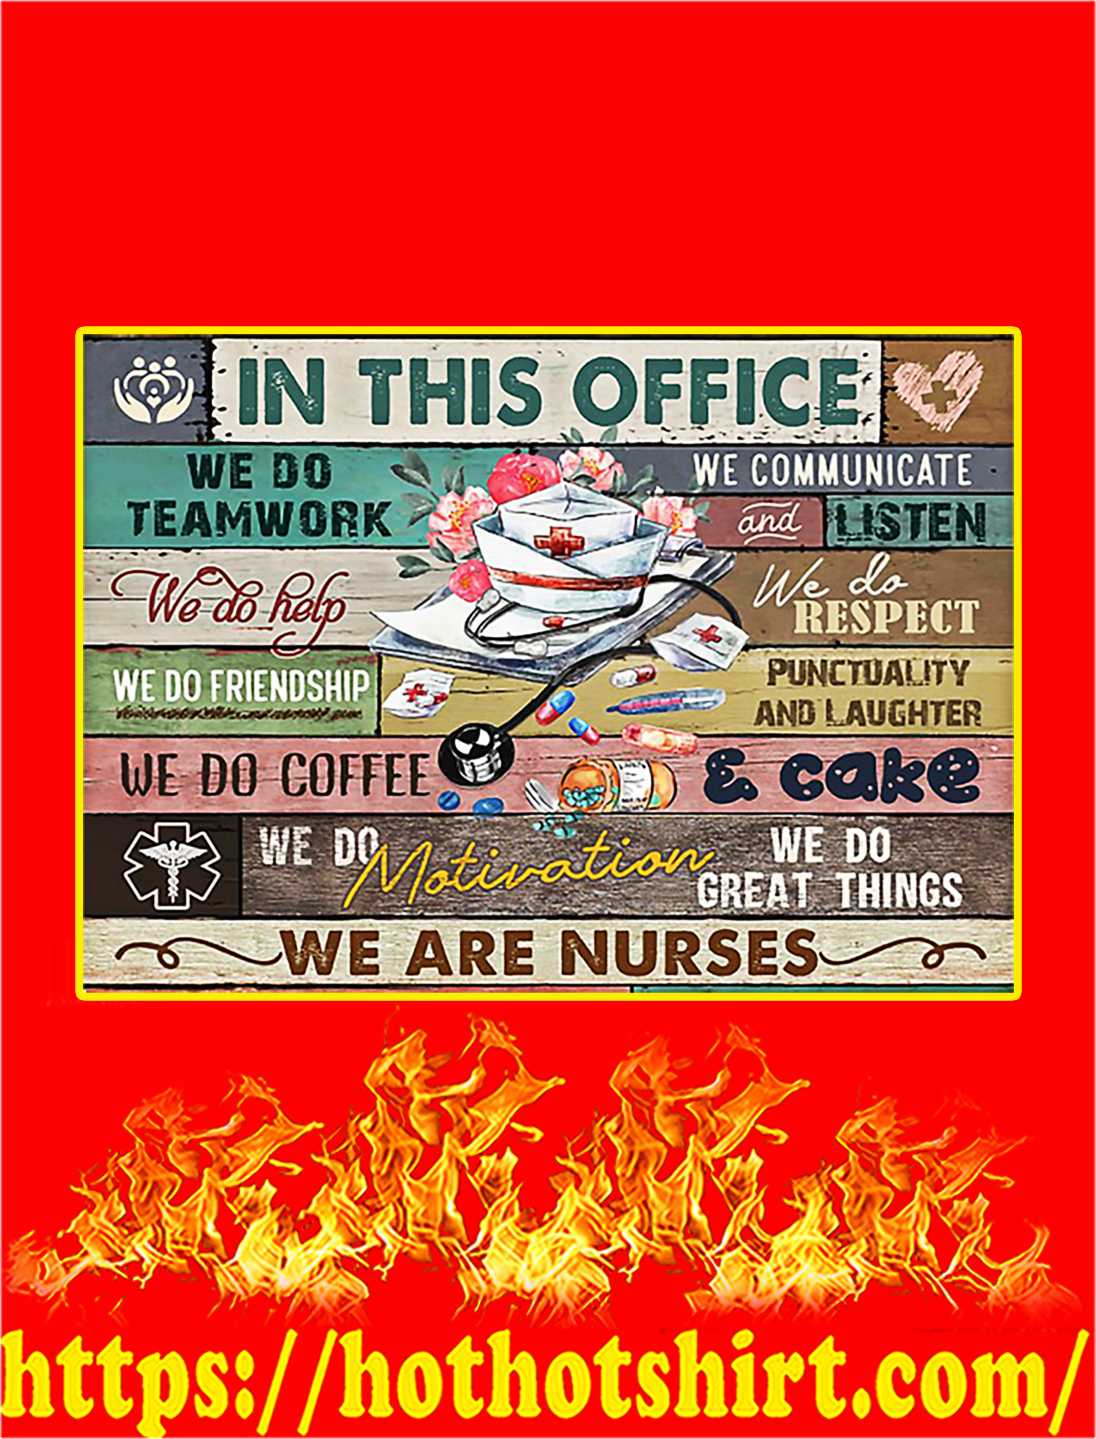 In This Office We Are Nurses Poster - A1